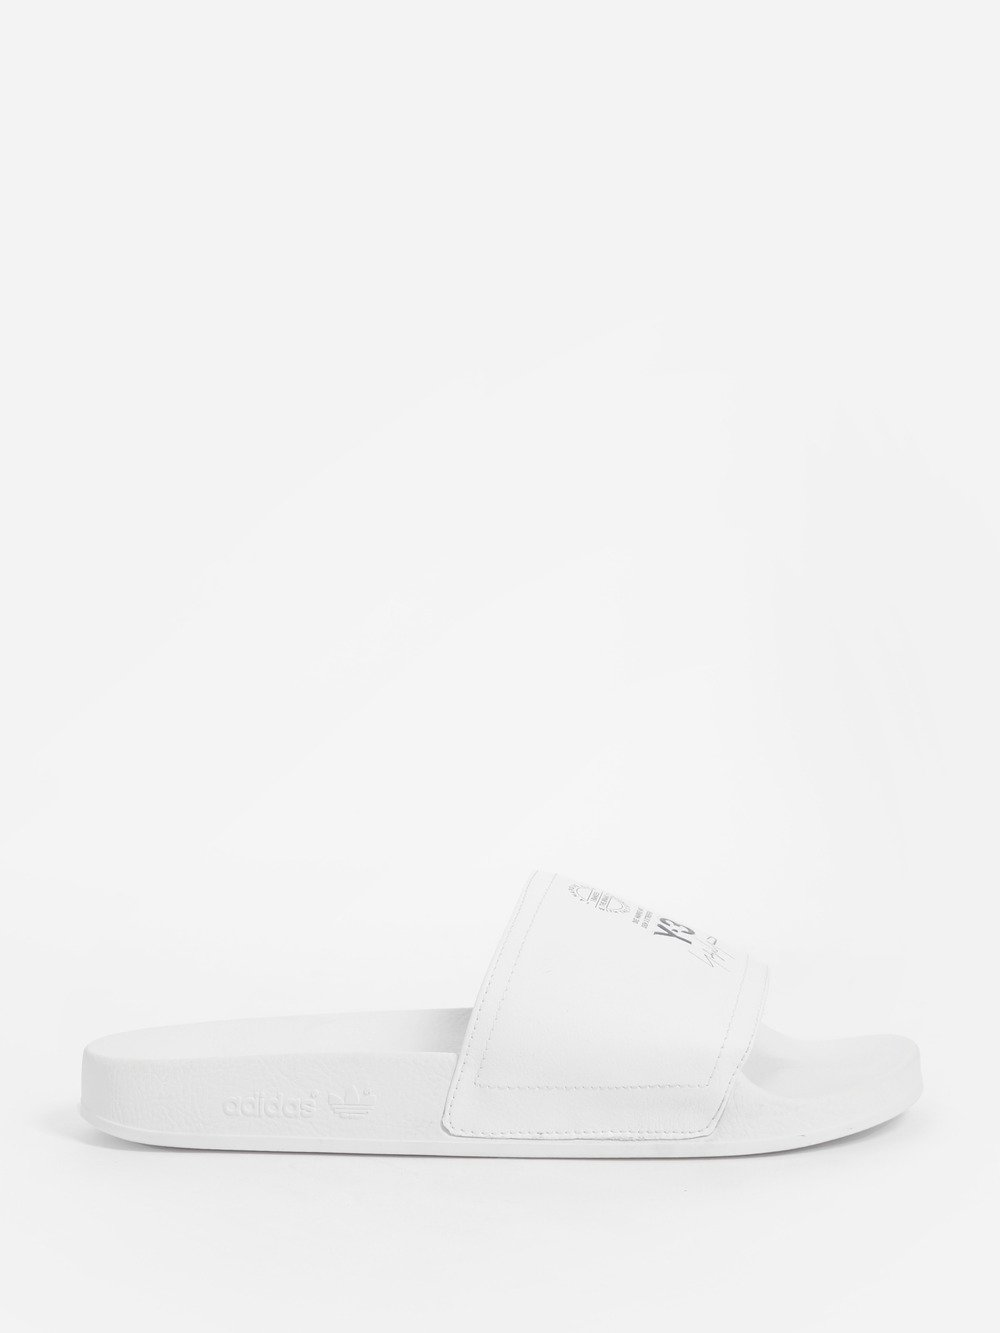 ADILETTE WHITE RUBBER AND SYNTHETIC LEATHER SLIPPER